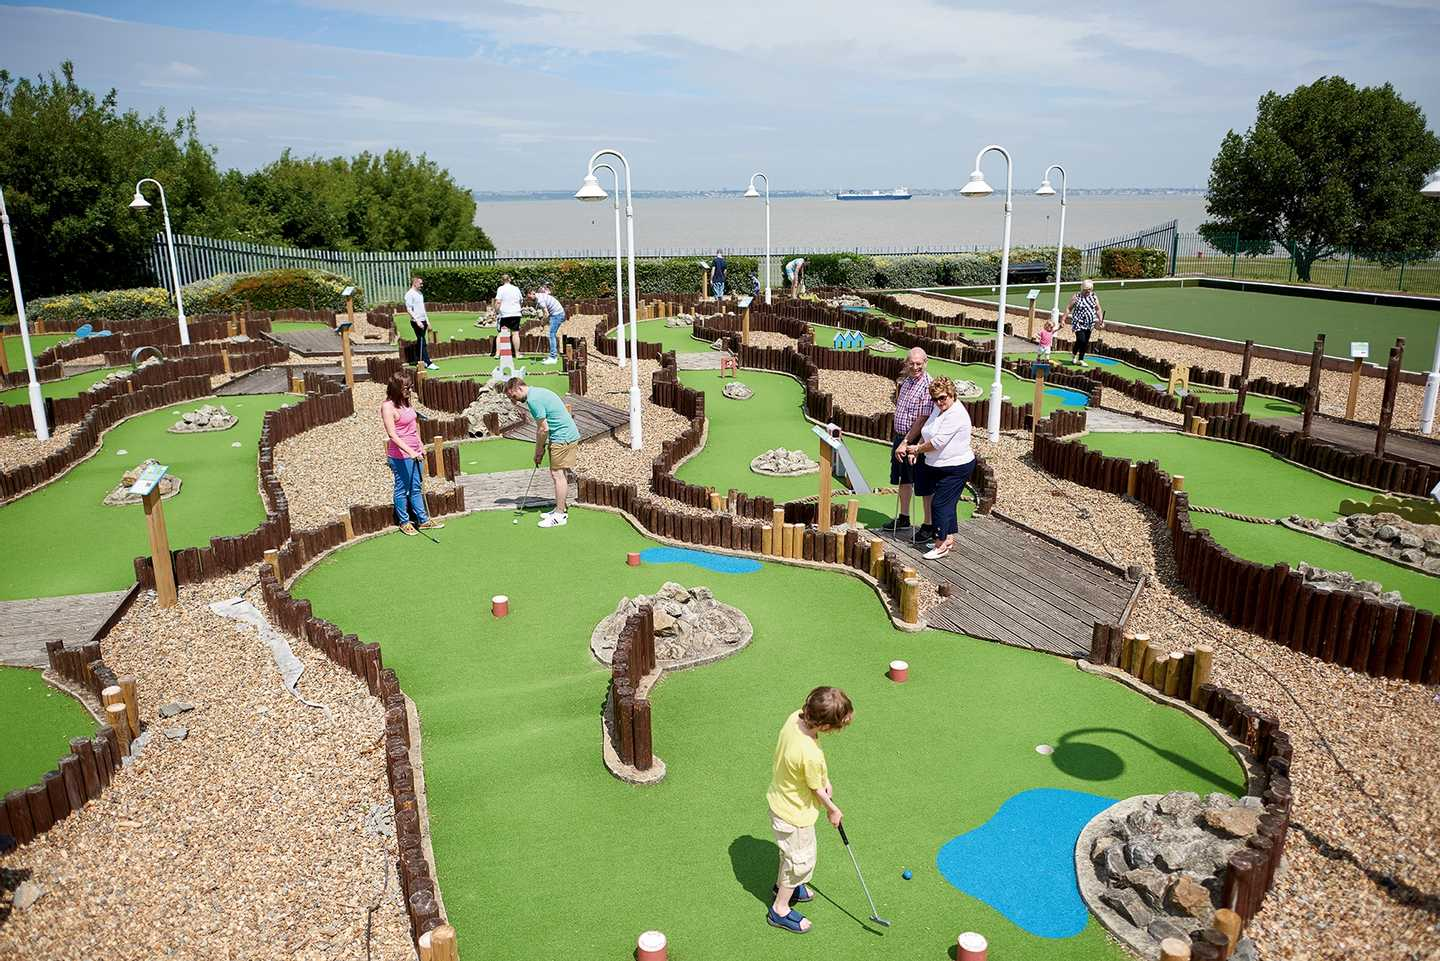 Family playing on the crazy golf course at Allhallows